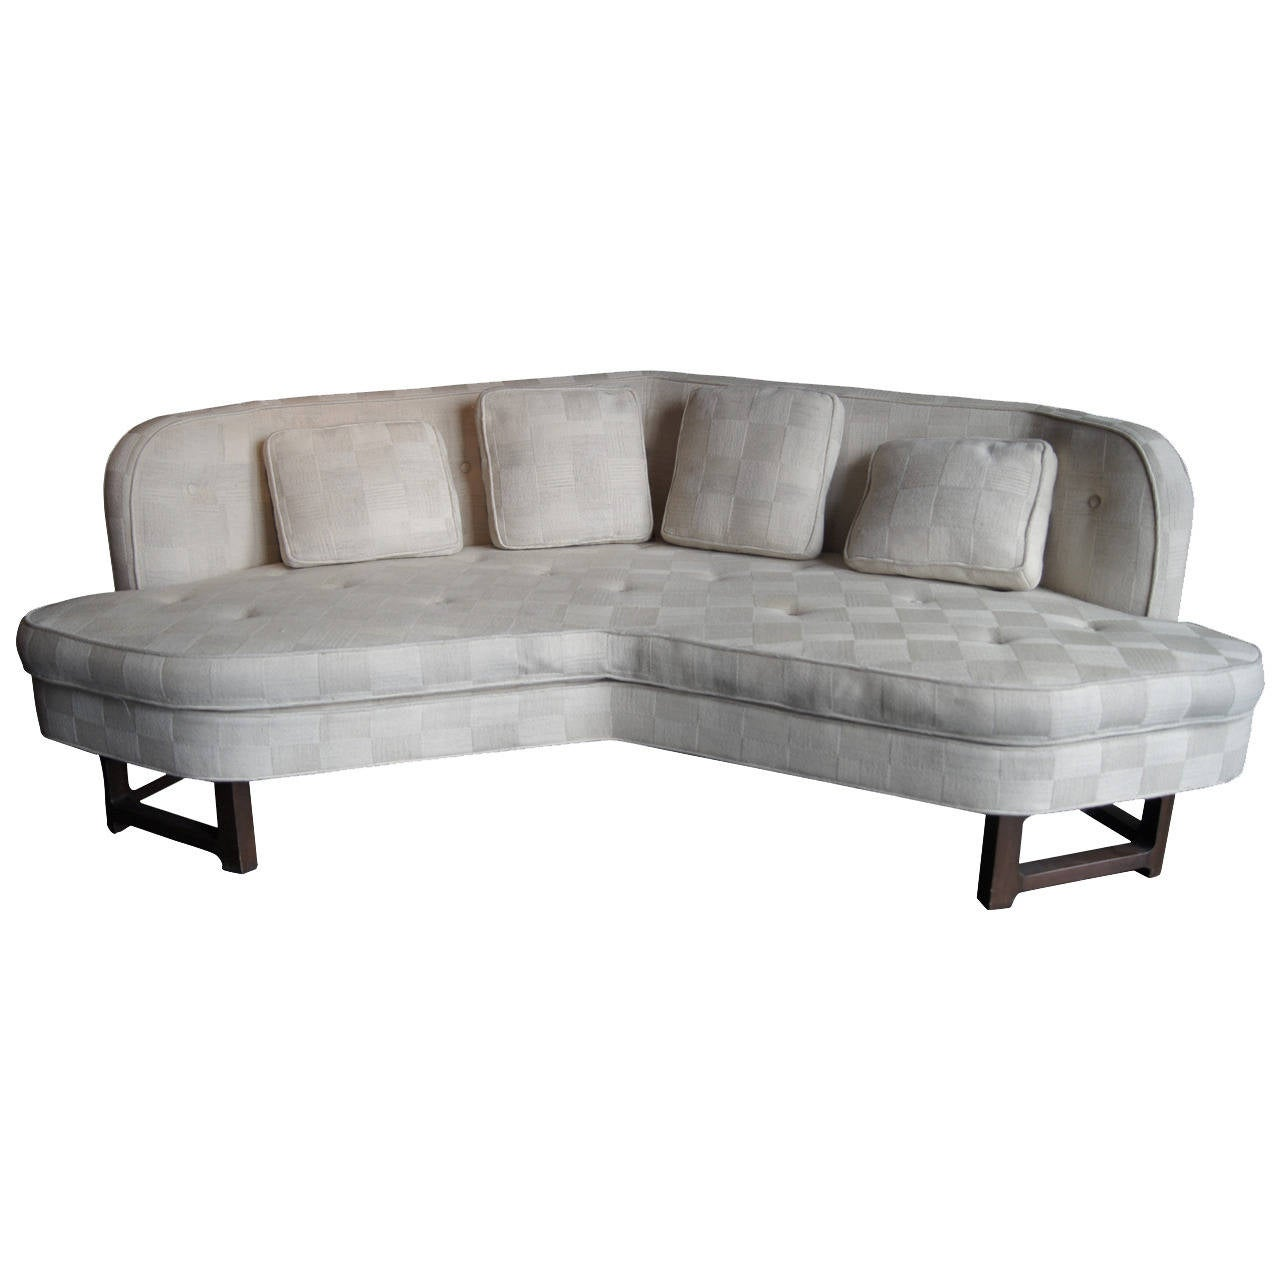 Angular Janus Collection Sofa, Model 6329, by Edward Wormley for Dunbar For Sale